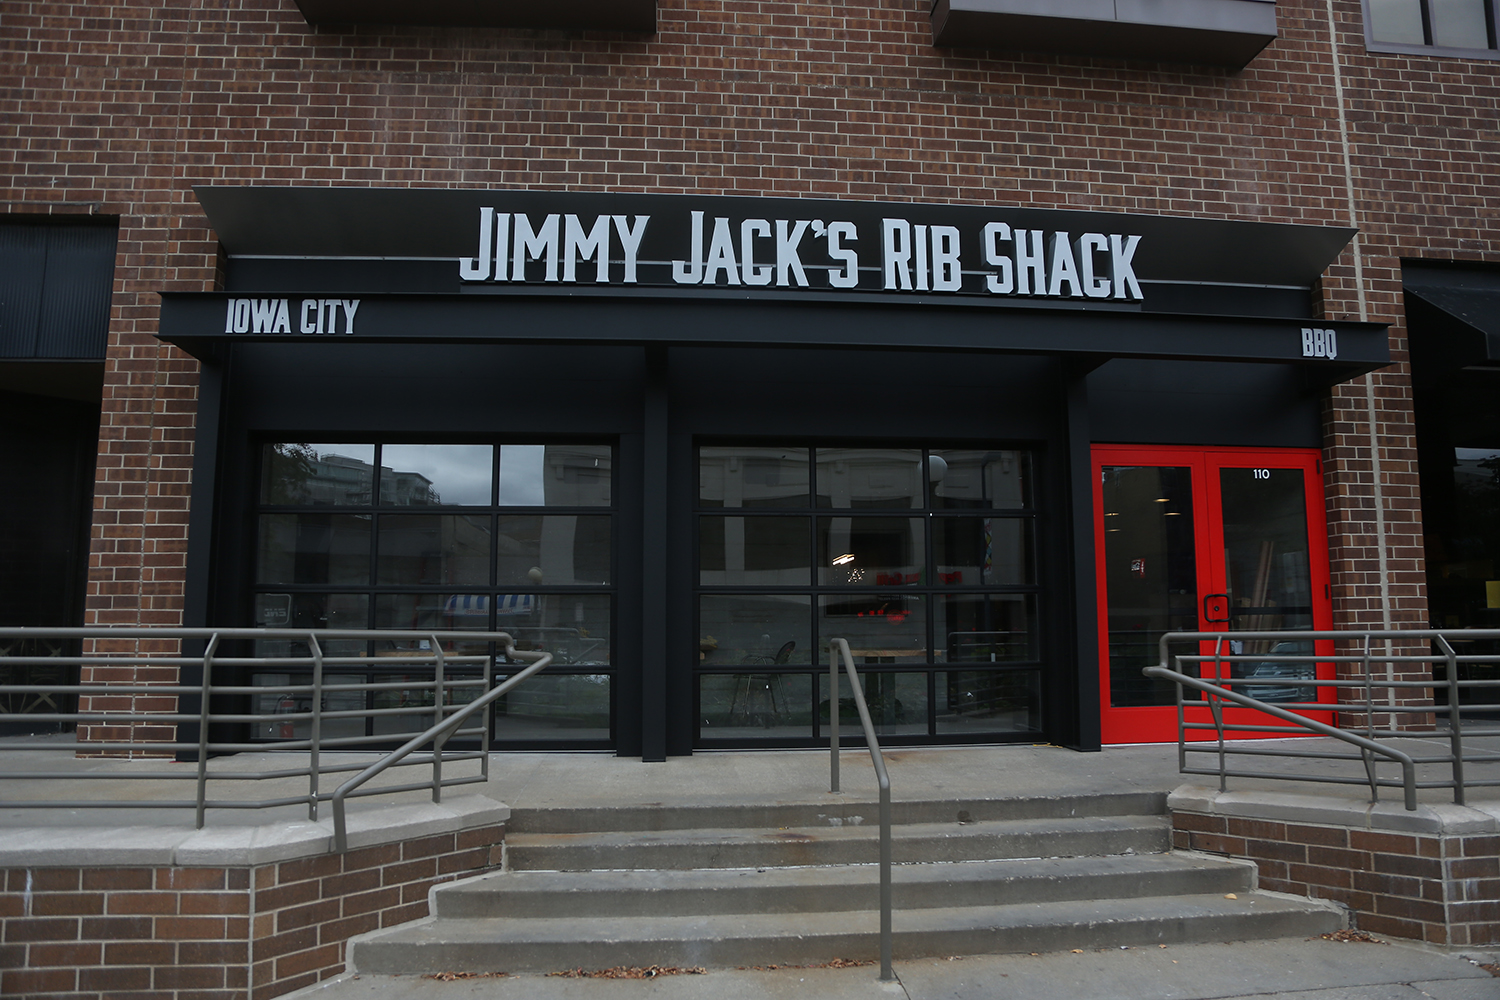 Jimmy Jacks Rib Shack is adding a new location to downtown Iowa City next to Buffalo Wild Wings located on S. Clinton St. Jimmy Jacks is also located on Lower Muscatine Road in Iowa City near the Sycamore Mall. (The Daily Iowan/ Alex Kroeze)